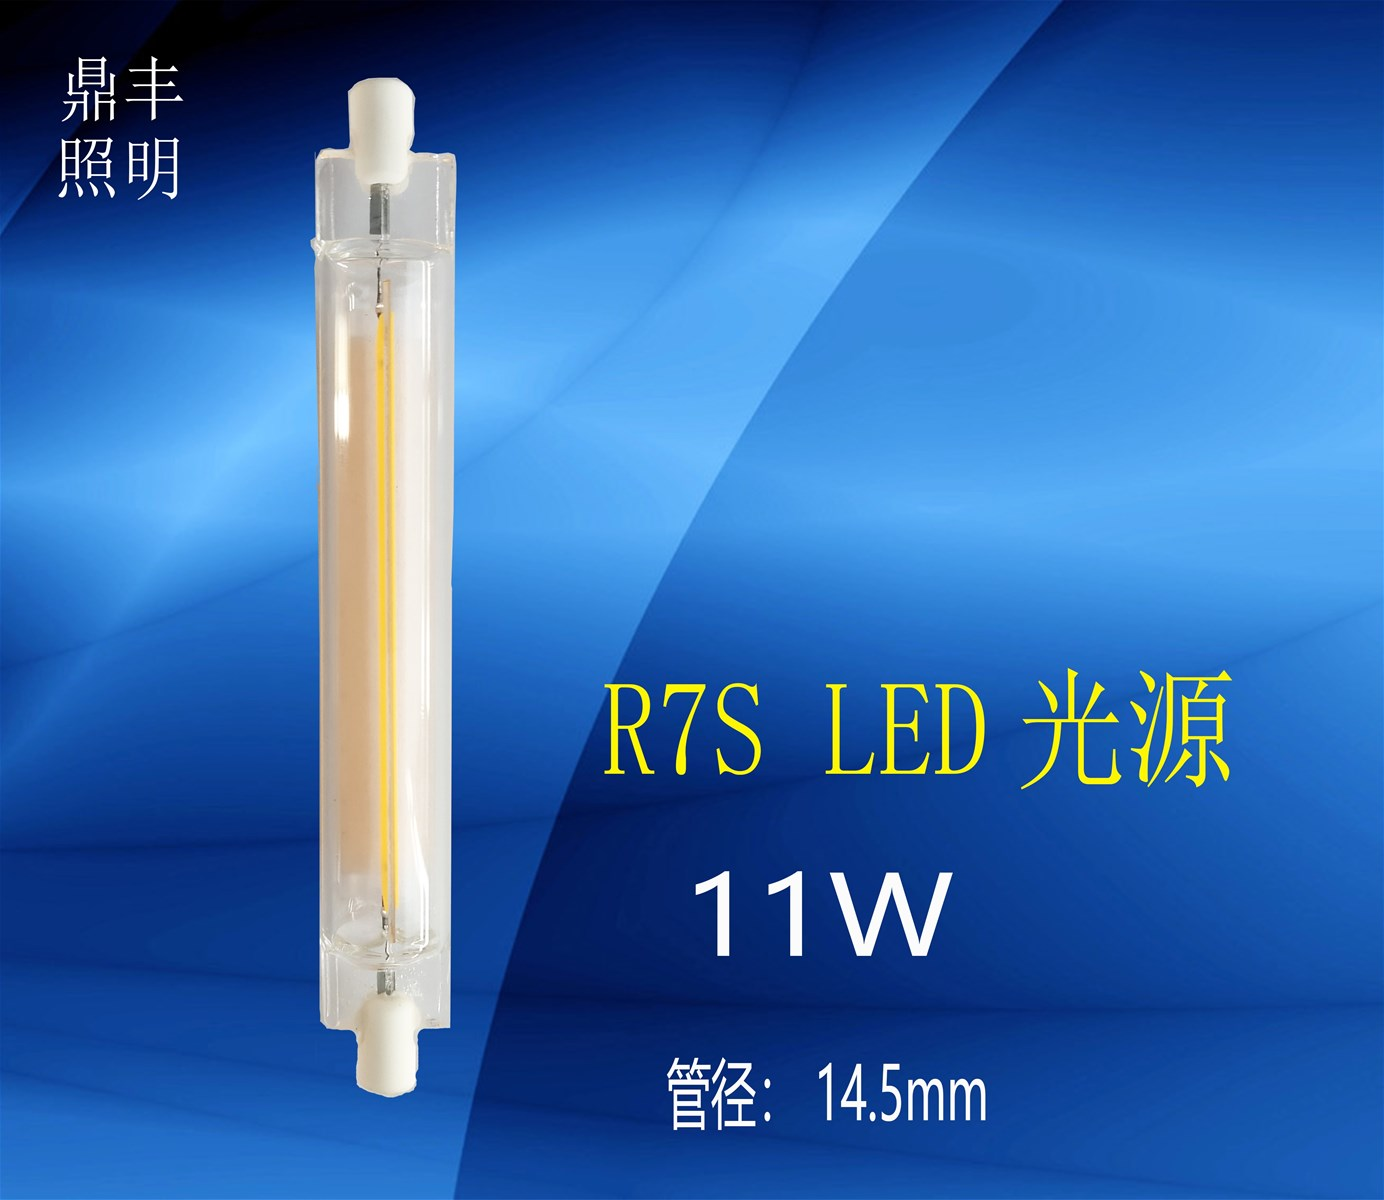 LED R7s 118mm LED Lamp Glass LED COB R7S Lights